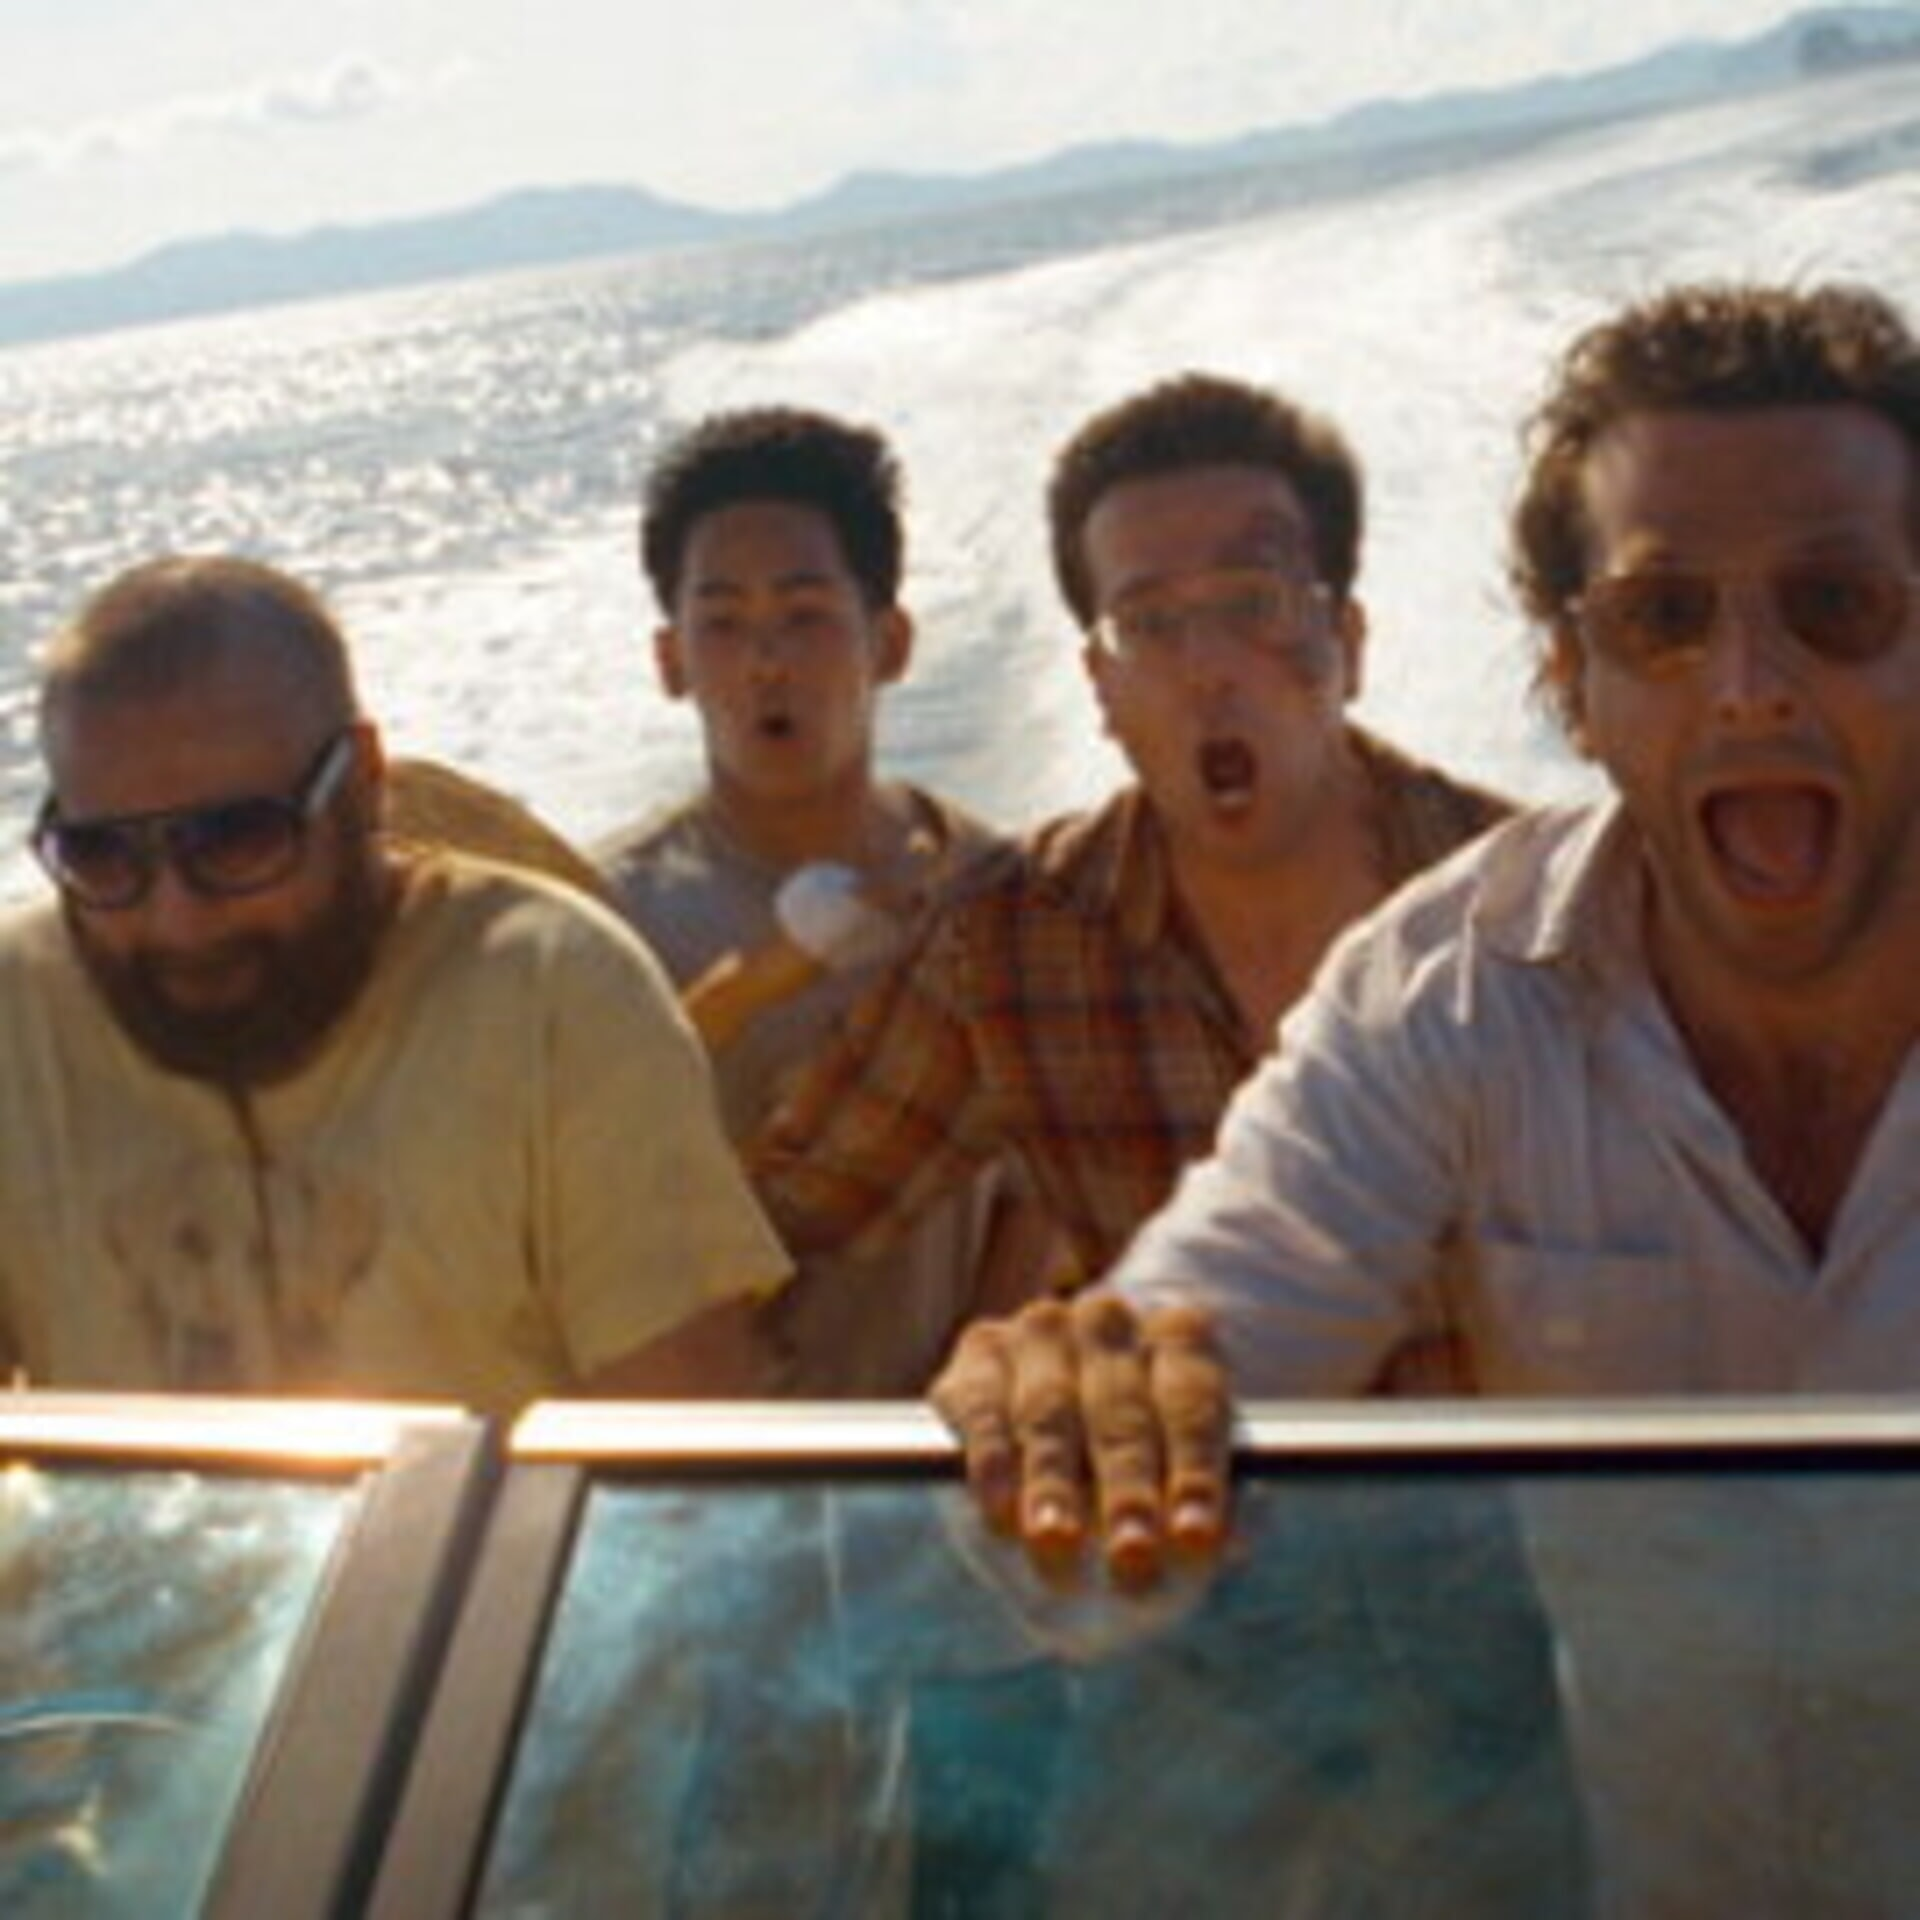 The Hangover Part II - Image 10